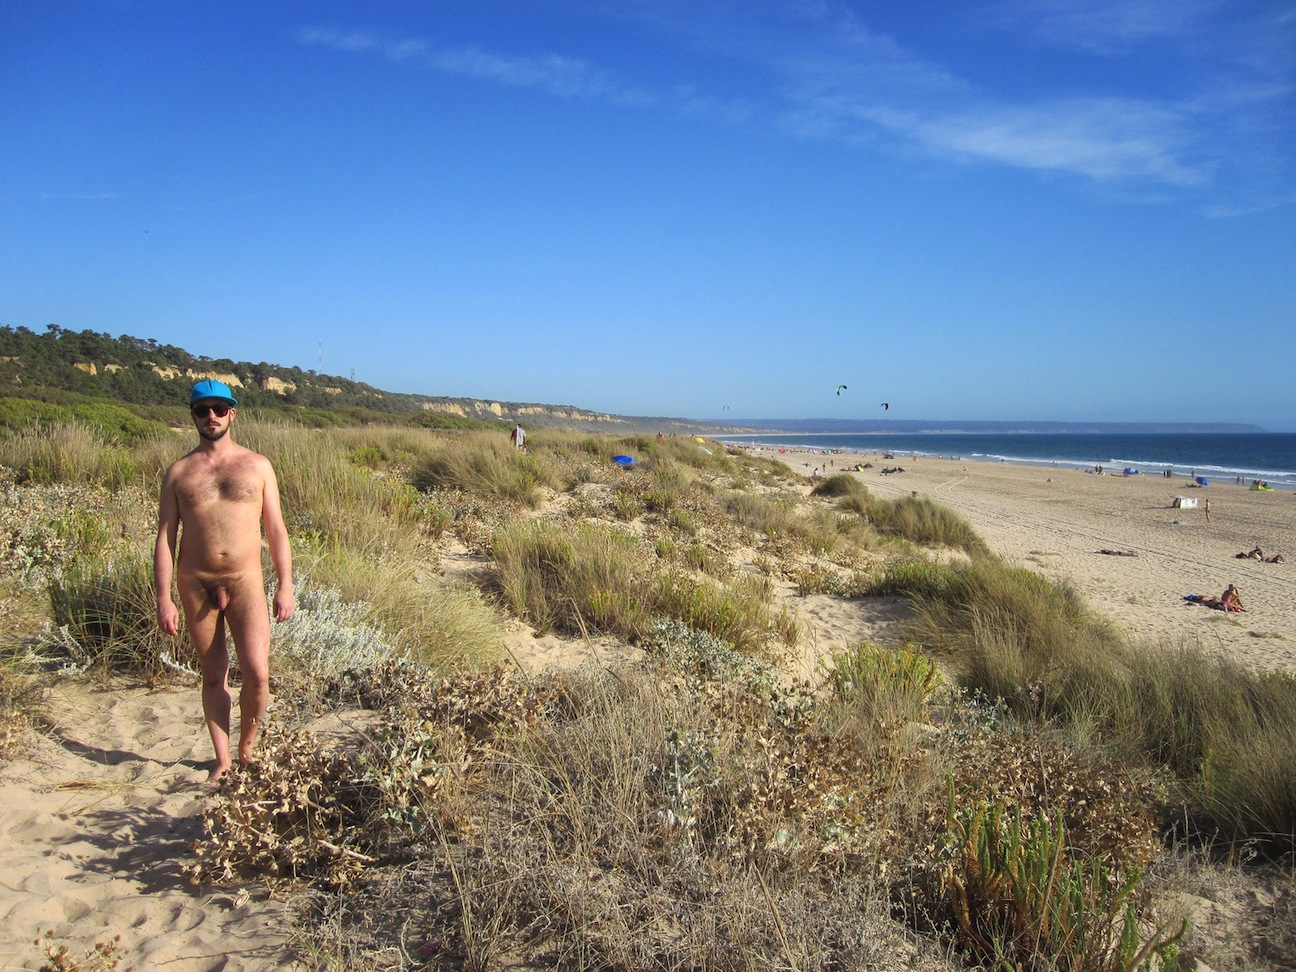 from Ashton algarve gay portugal